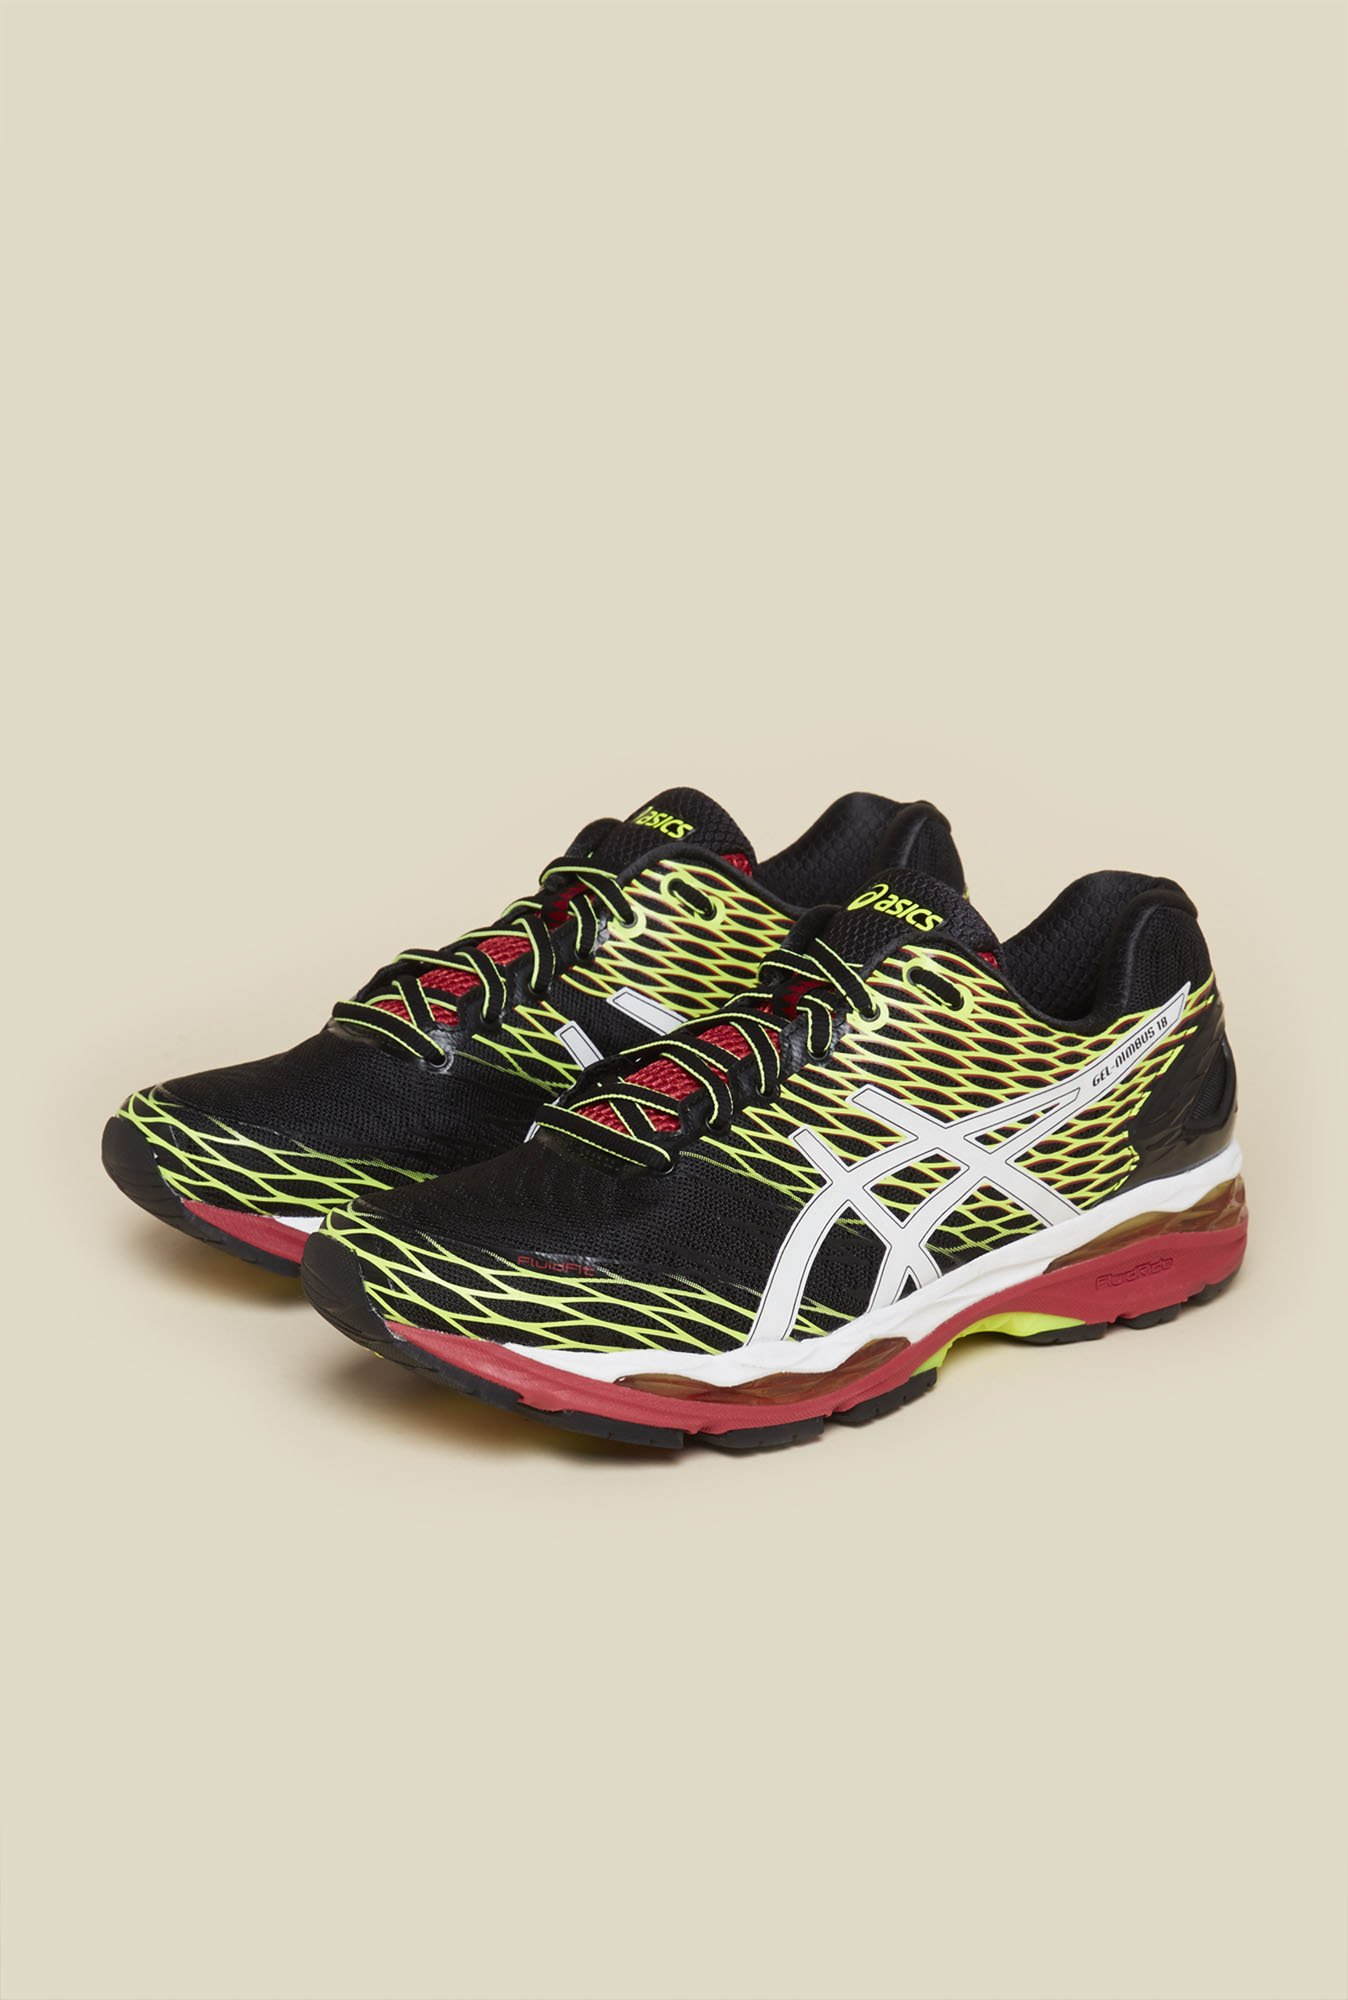 Asics GelNimbus 18 Mens Running Shoes